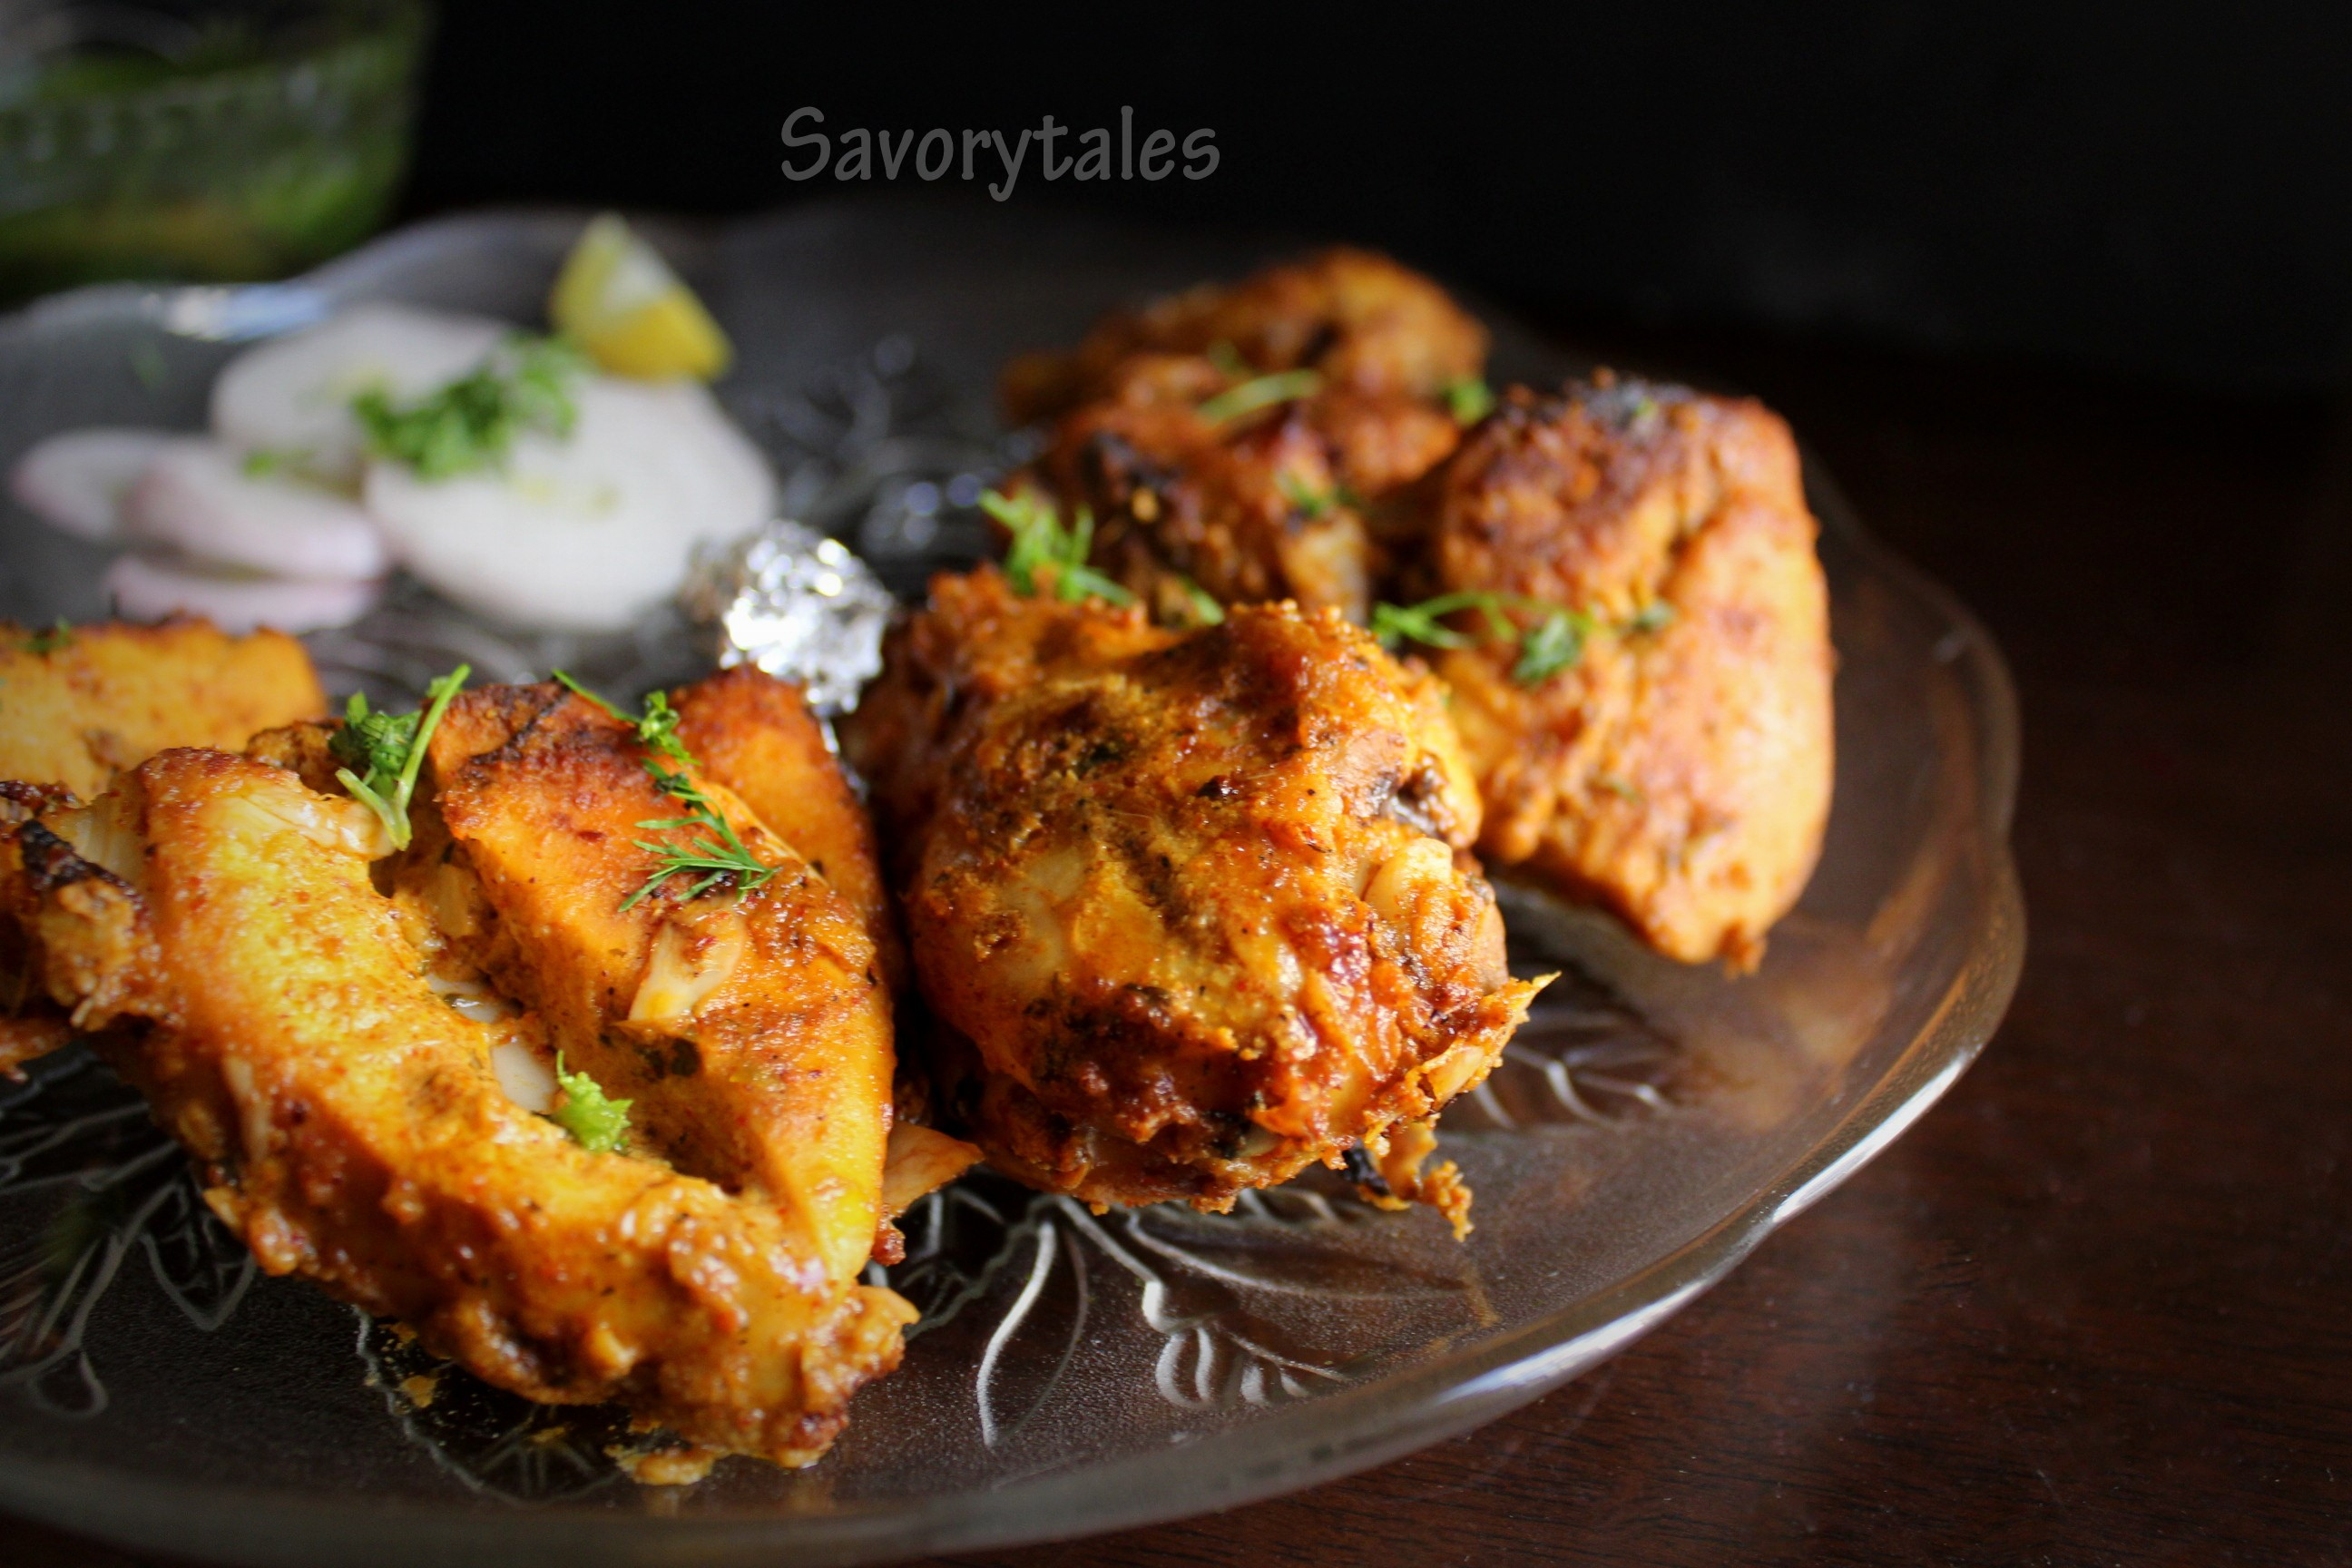 How to make tandoori chicken in lg microwave convection oven